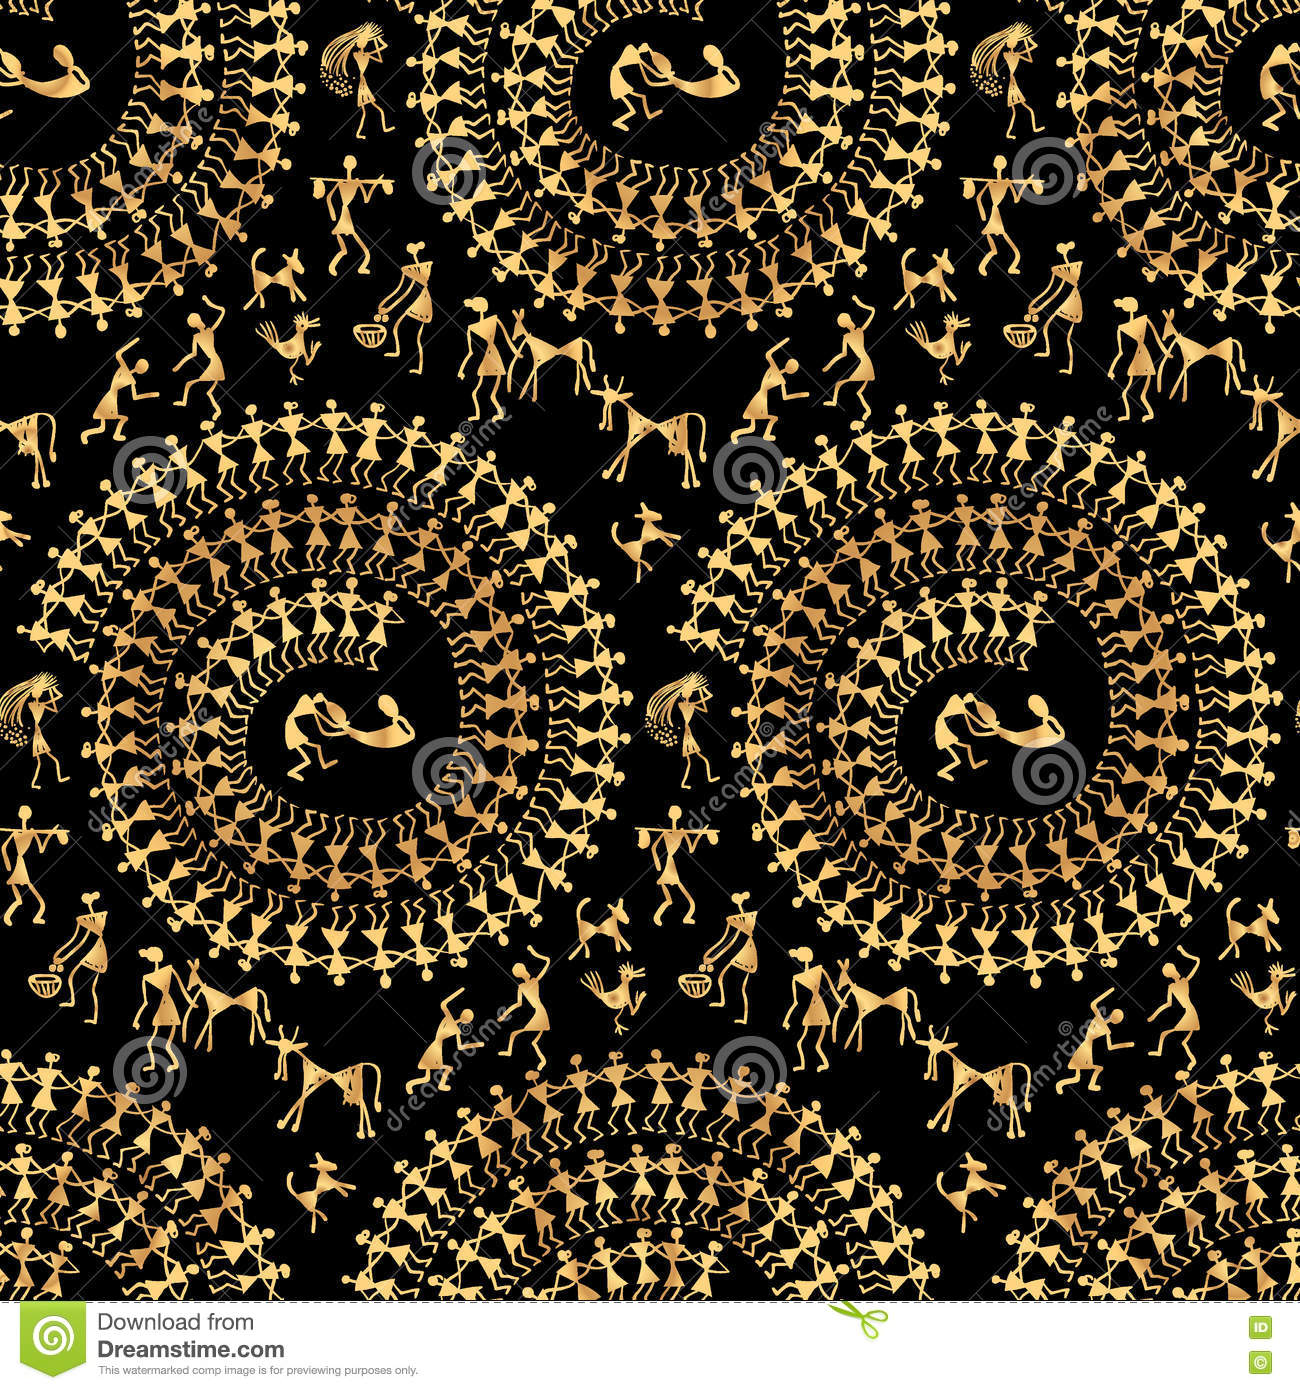 Warli painting seamless pattern - hand drawn traditional the ancient tribal art India. Rudimentary Technique depicting rural life of the inhabitants of ...